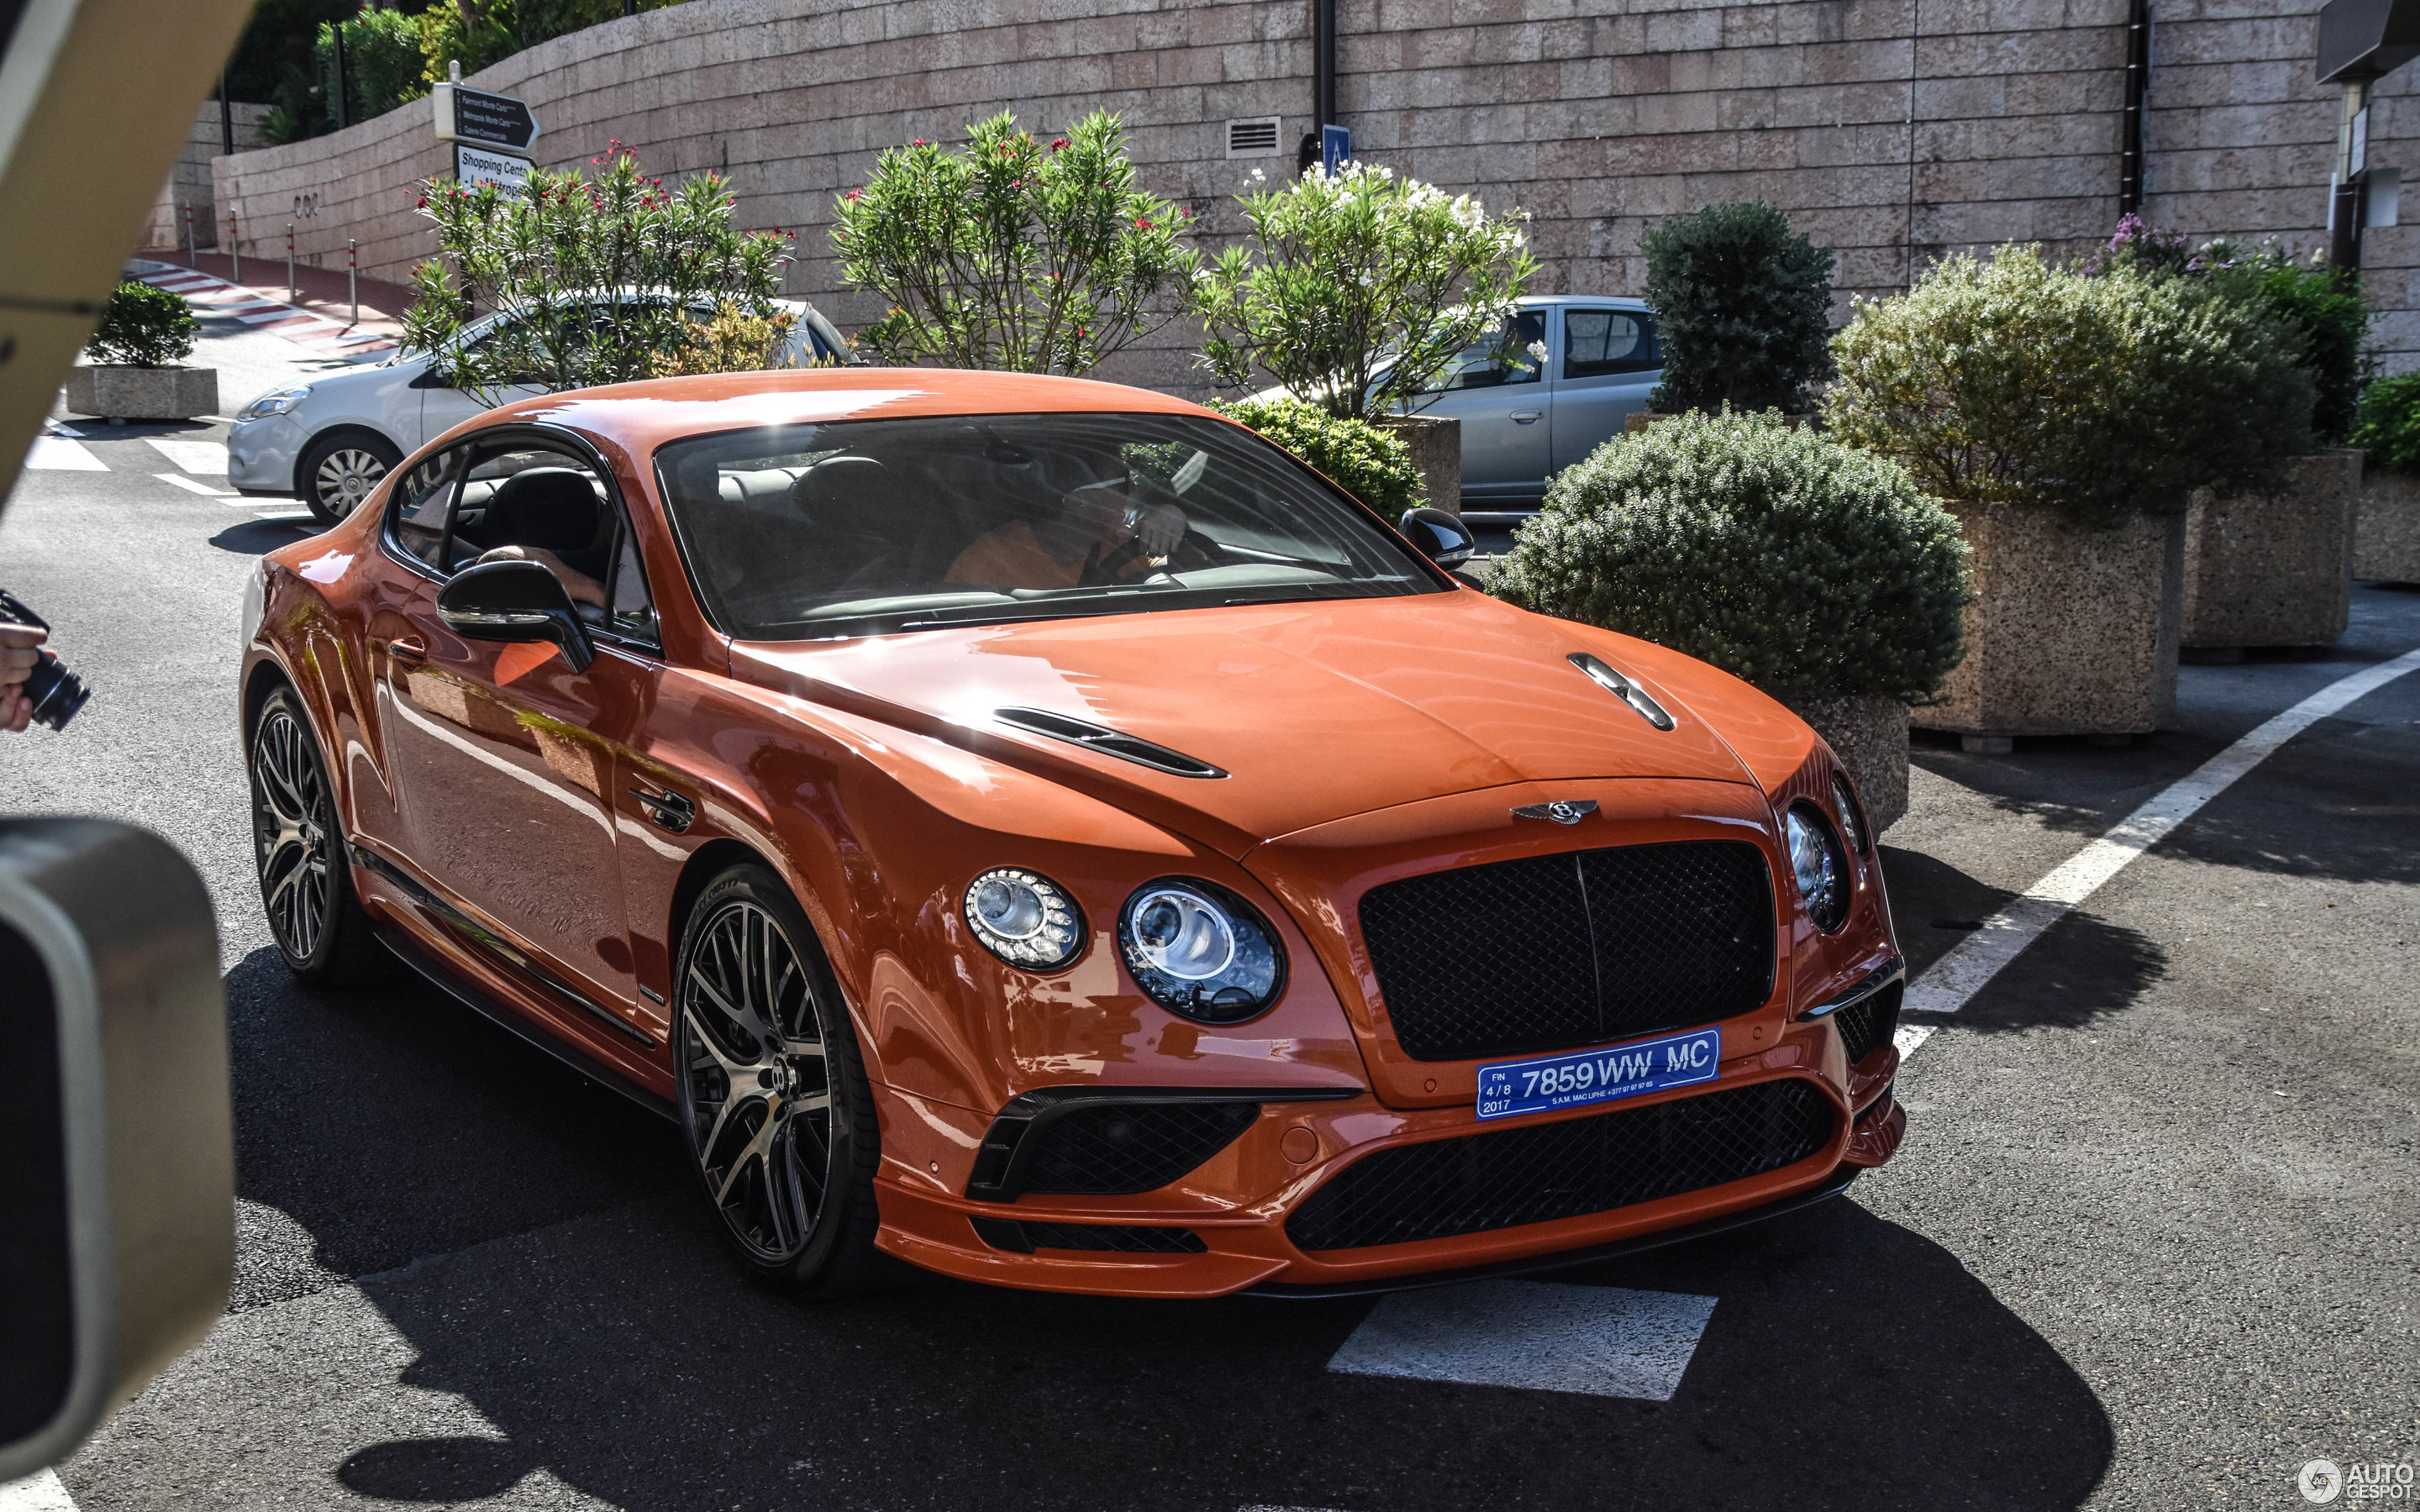 recond for bentley my kuala lumpur gt continental car sale new oto